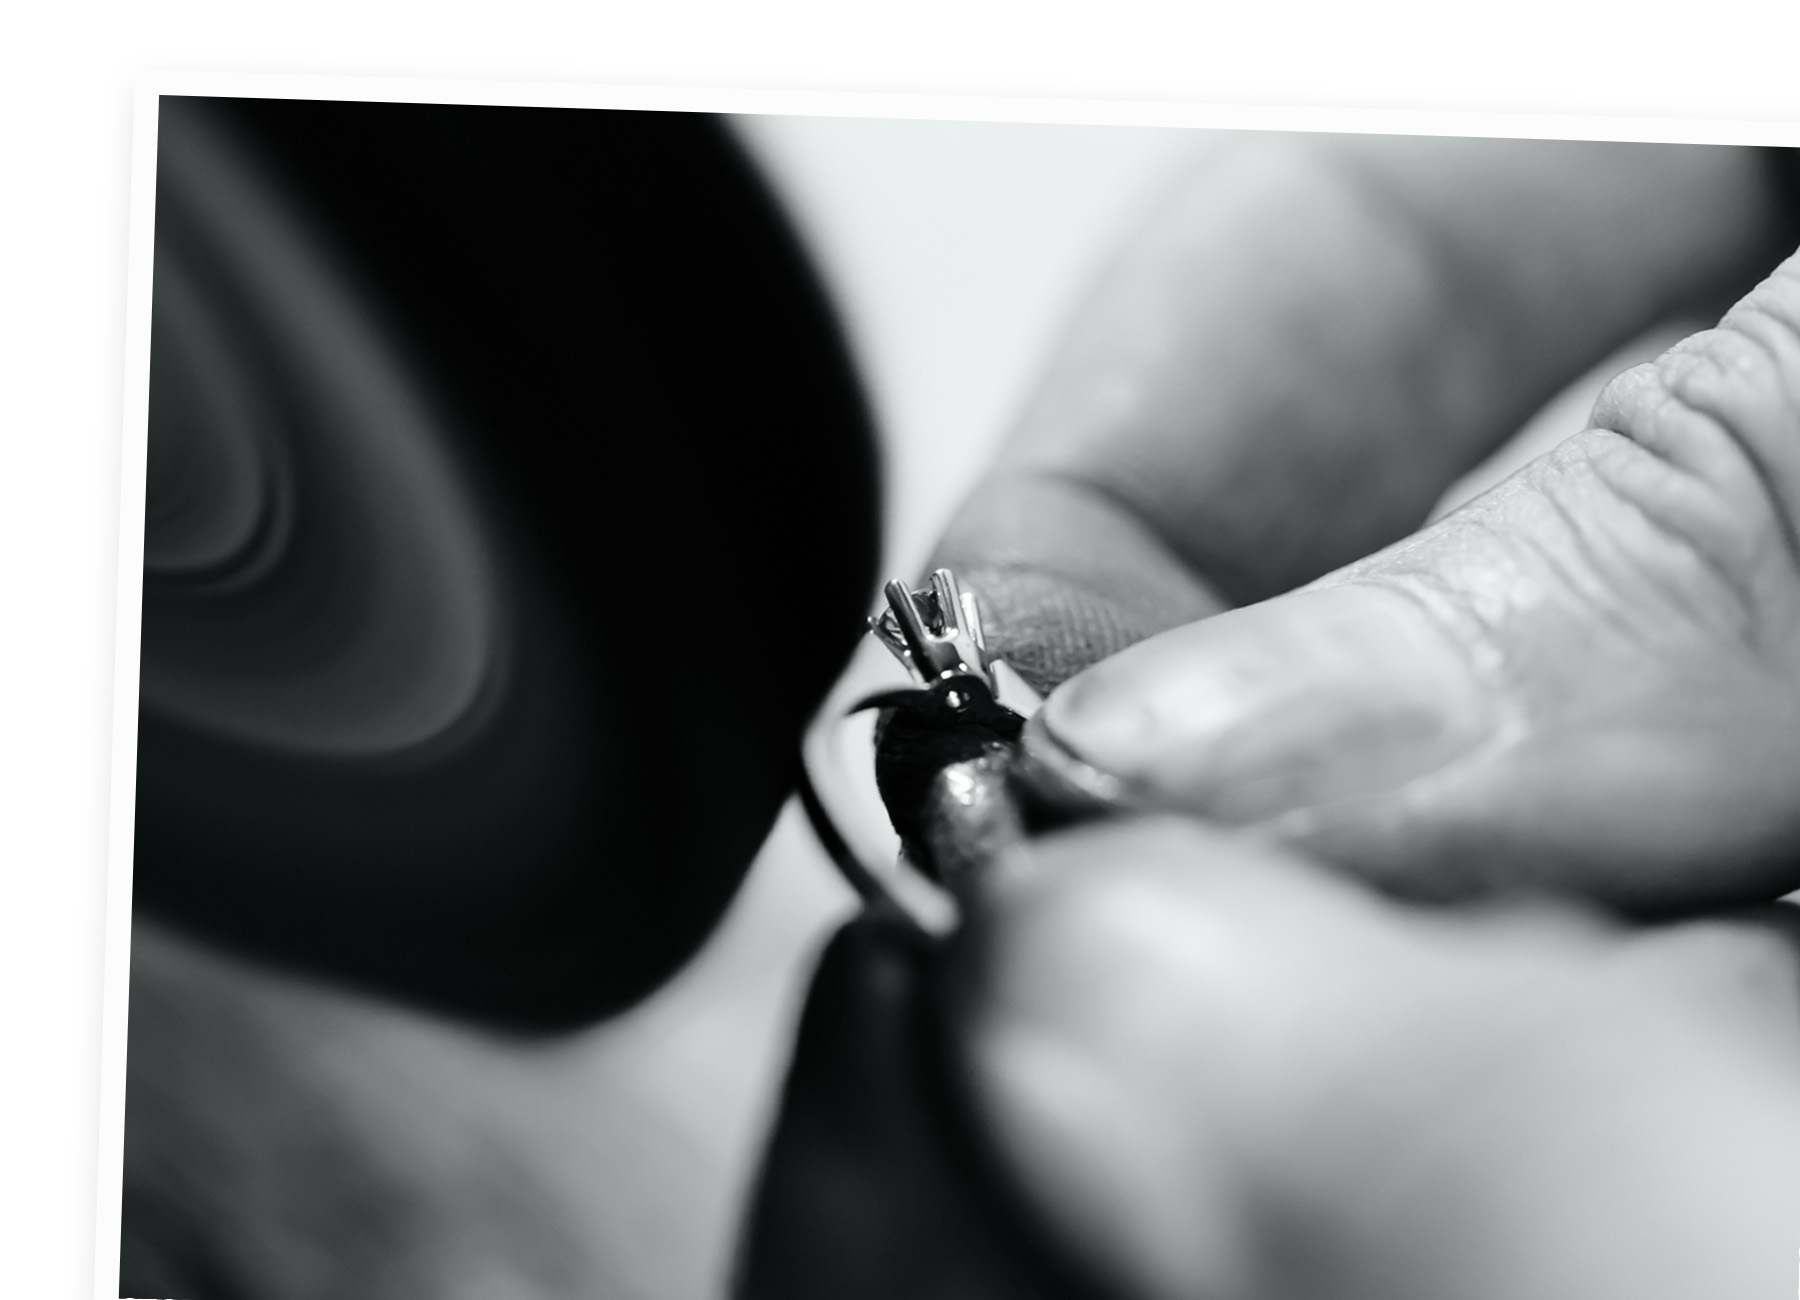 Perfecting our craft - By never compromising the quality of our products and offering fair prices we have continued to grow and build our reputation across the North West